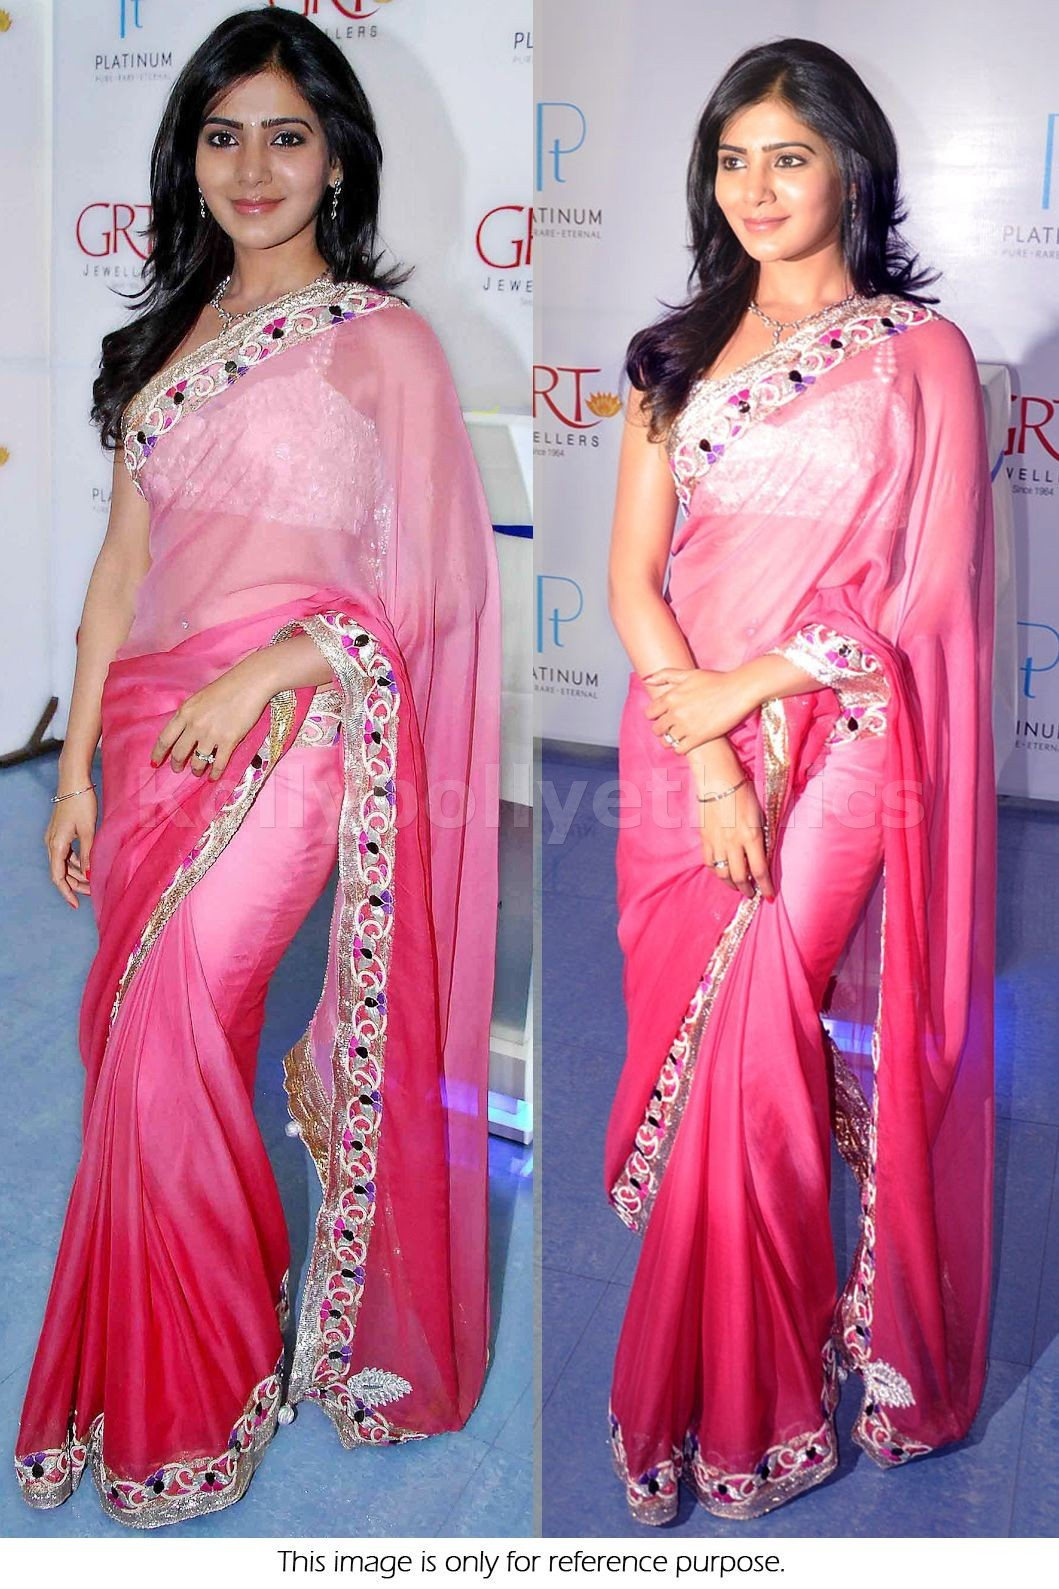 Samantha Pink Bollywood Saree